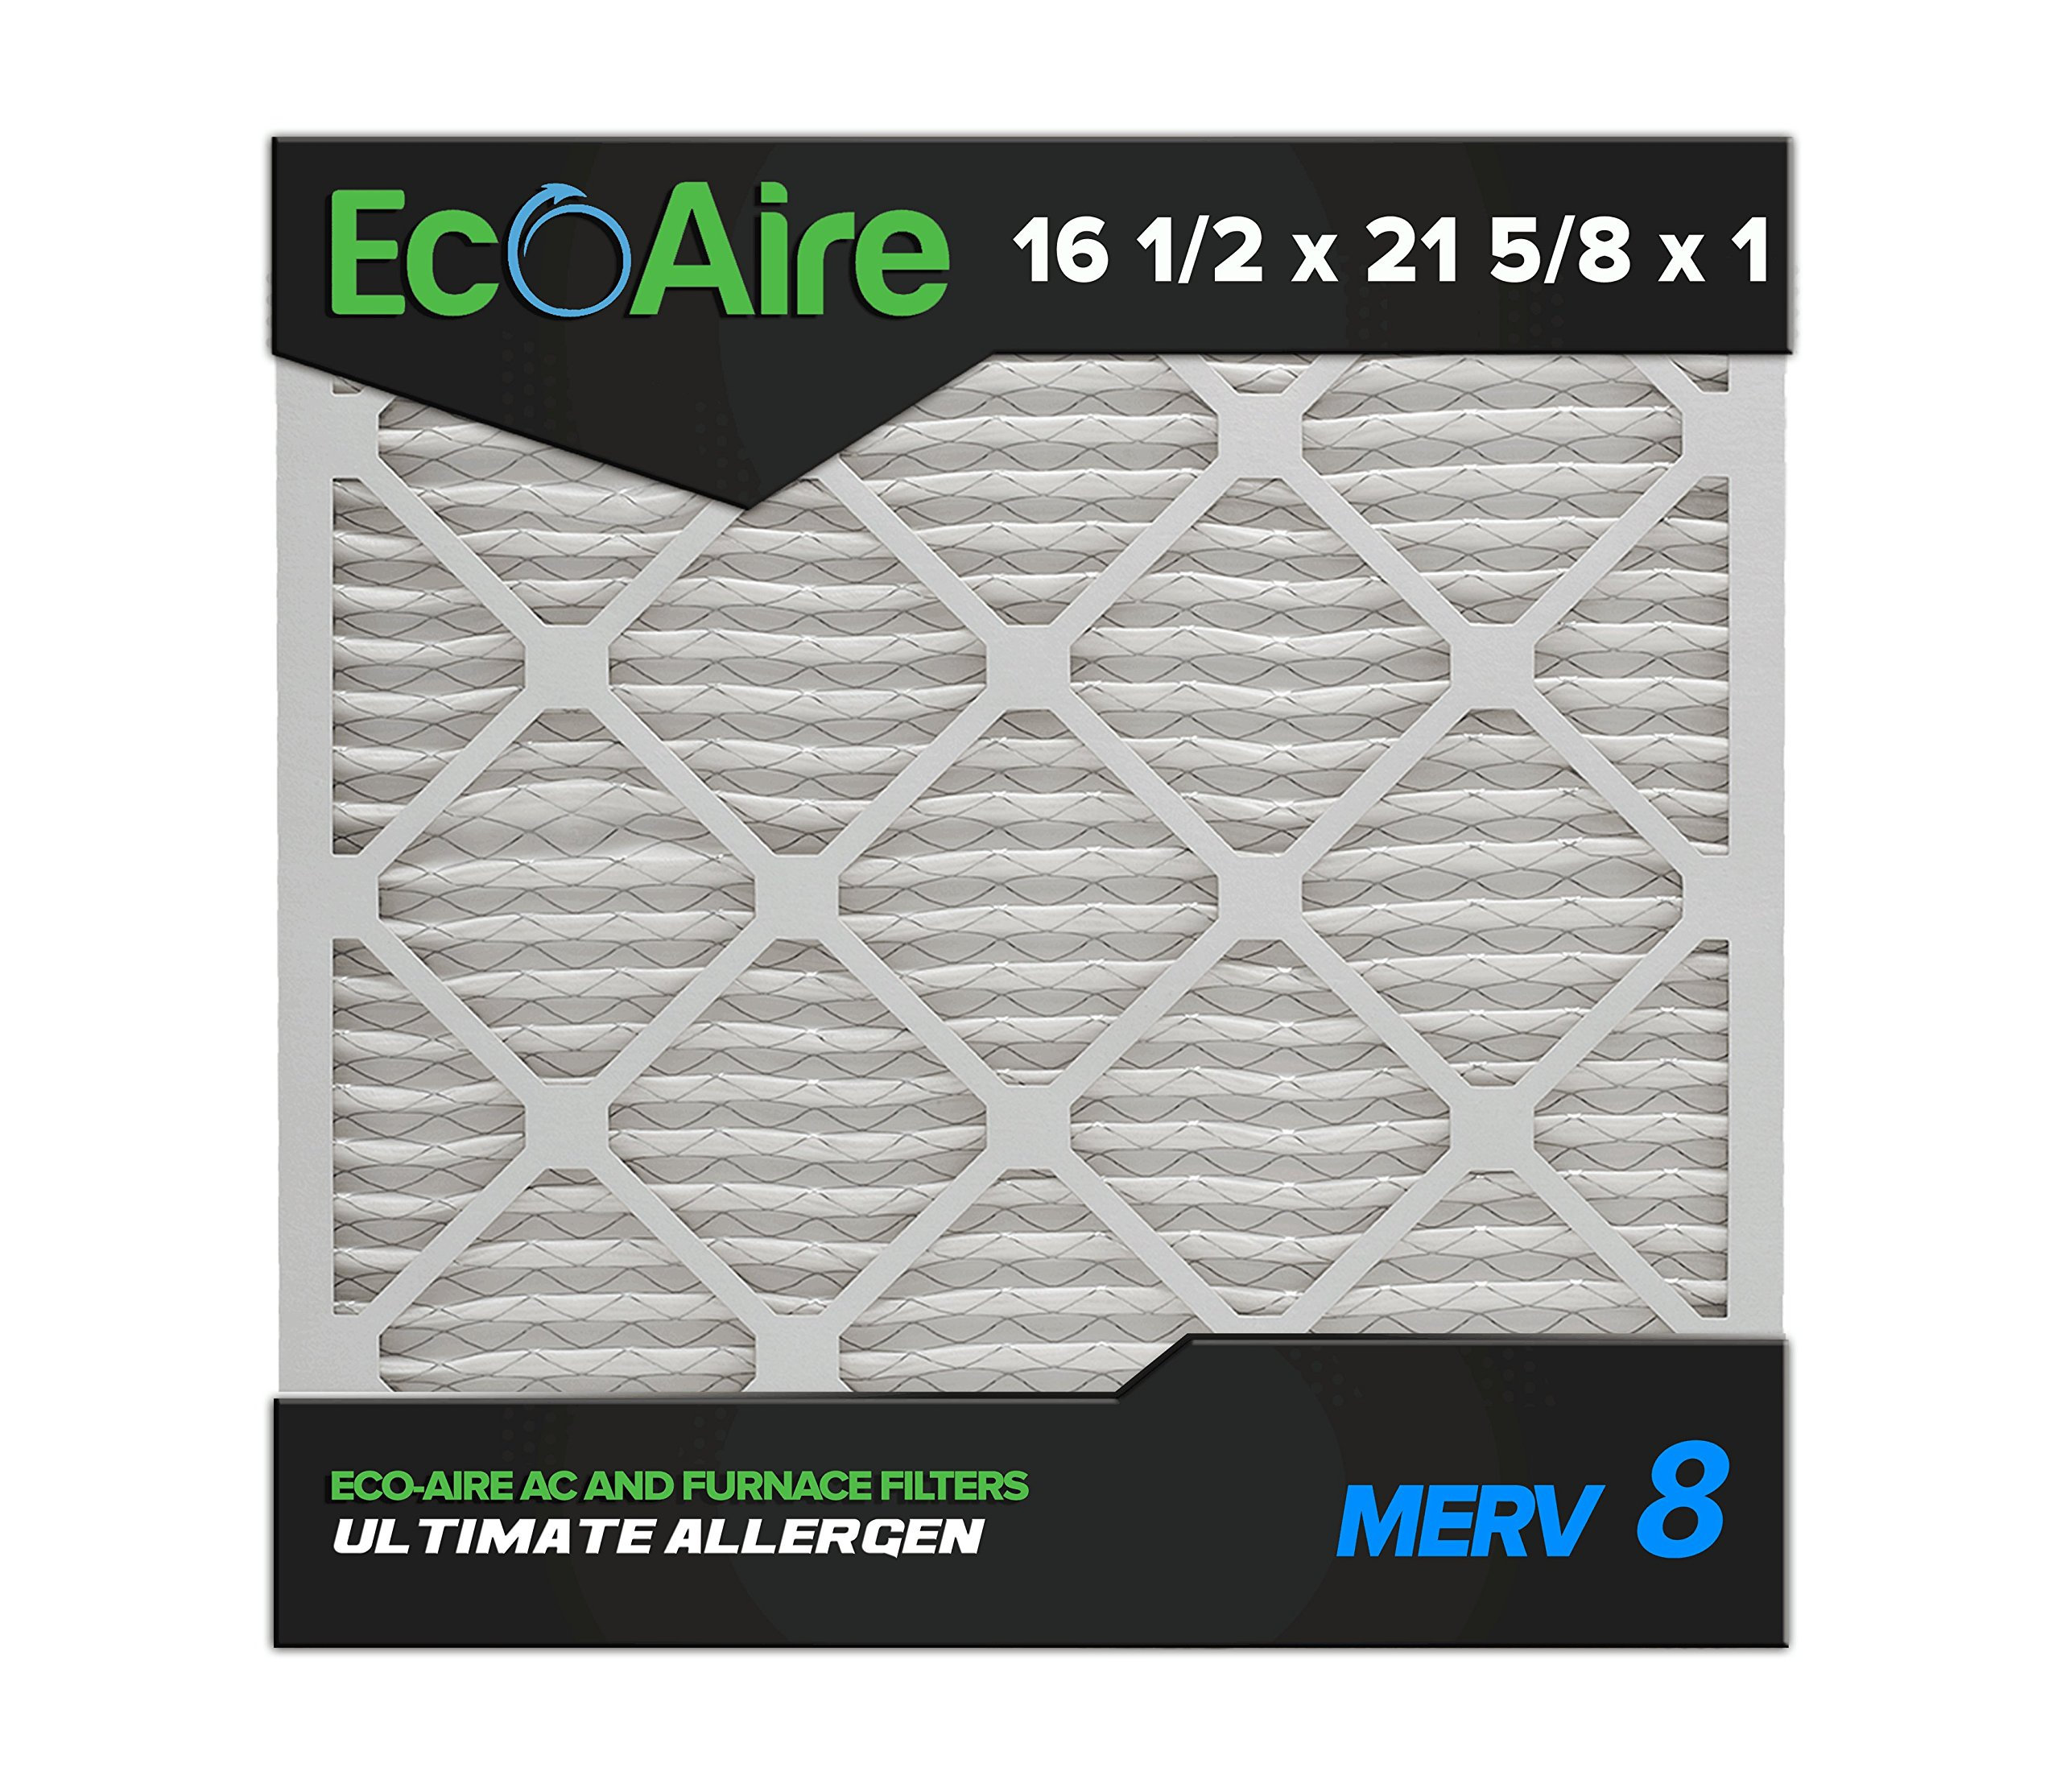 Eco-Aire 16 1/2x21 5/8x1 MERV 8, Pleated Air Filter, 16 1/2 x 21 5/8 x 1, Box of 6, Made in the USA